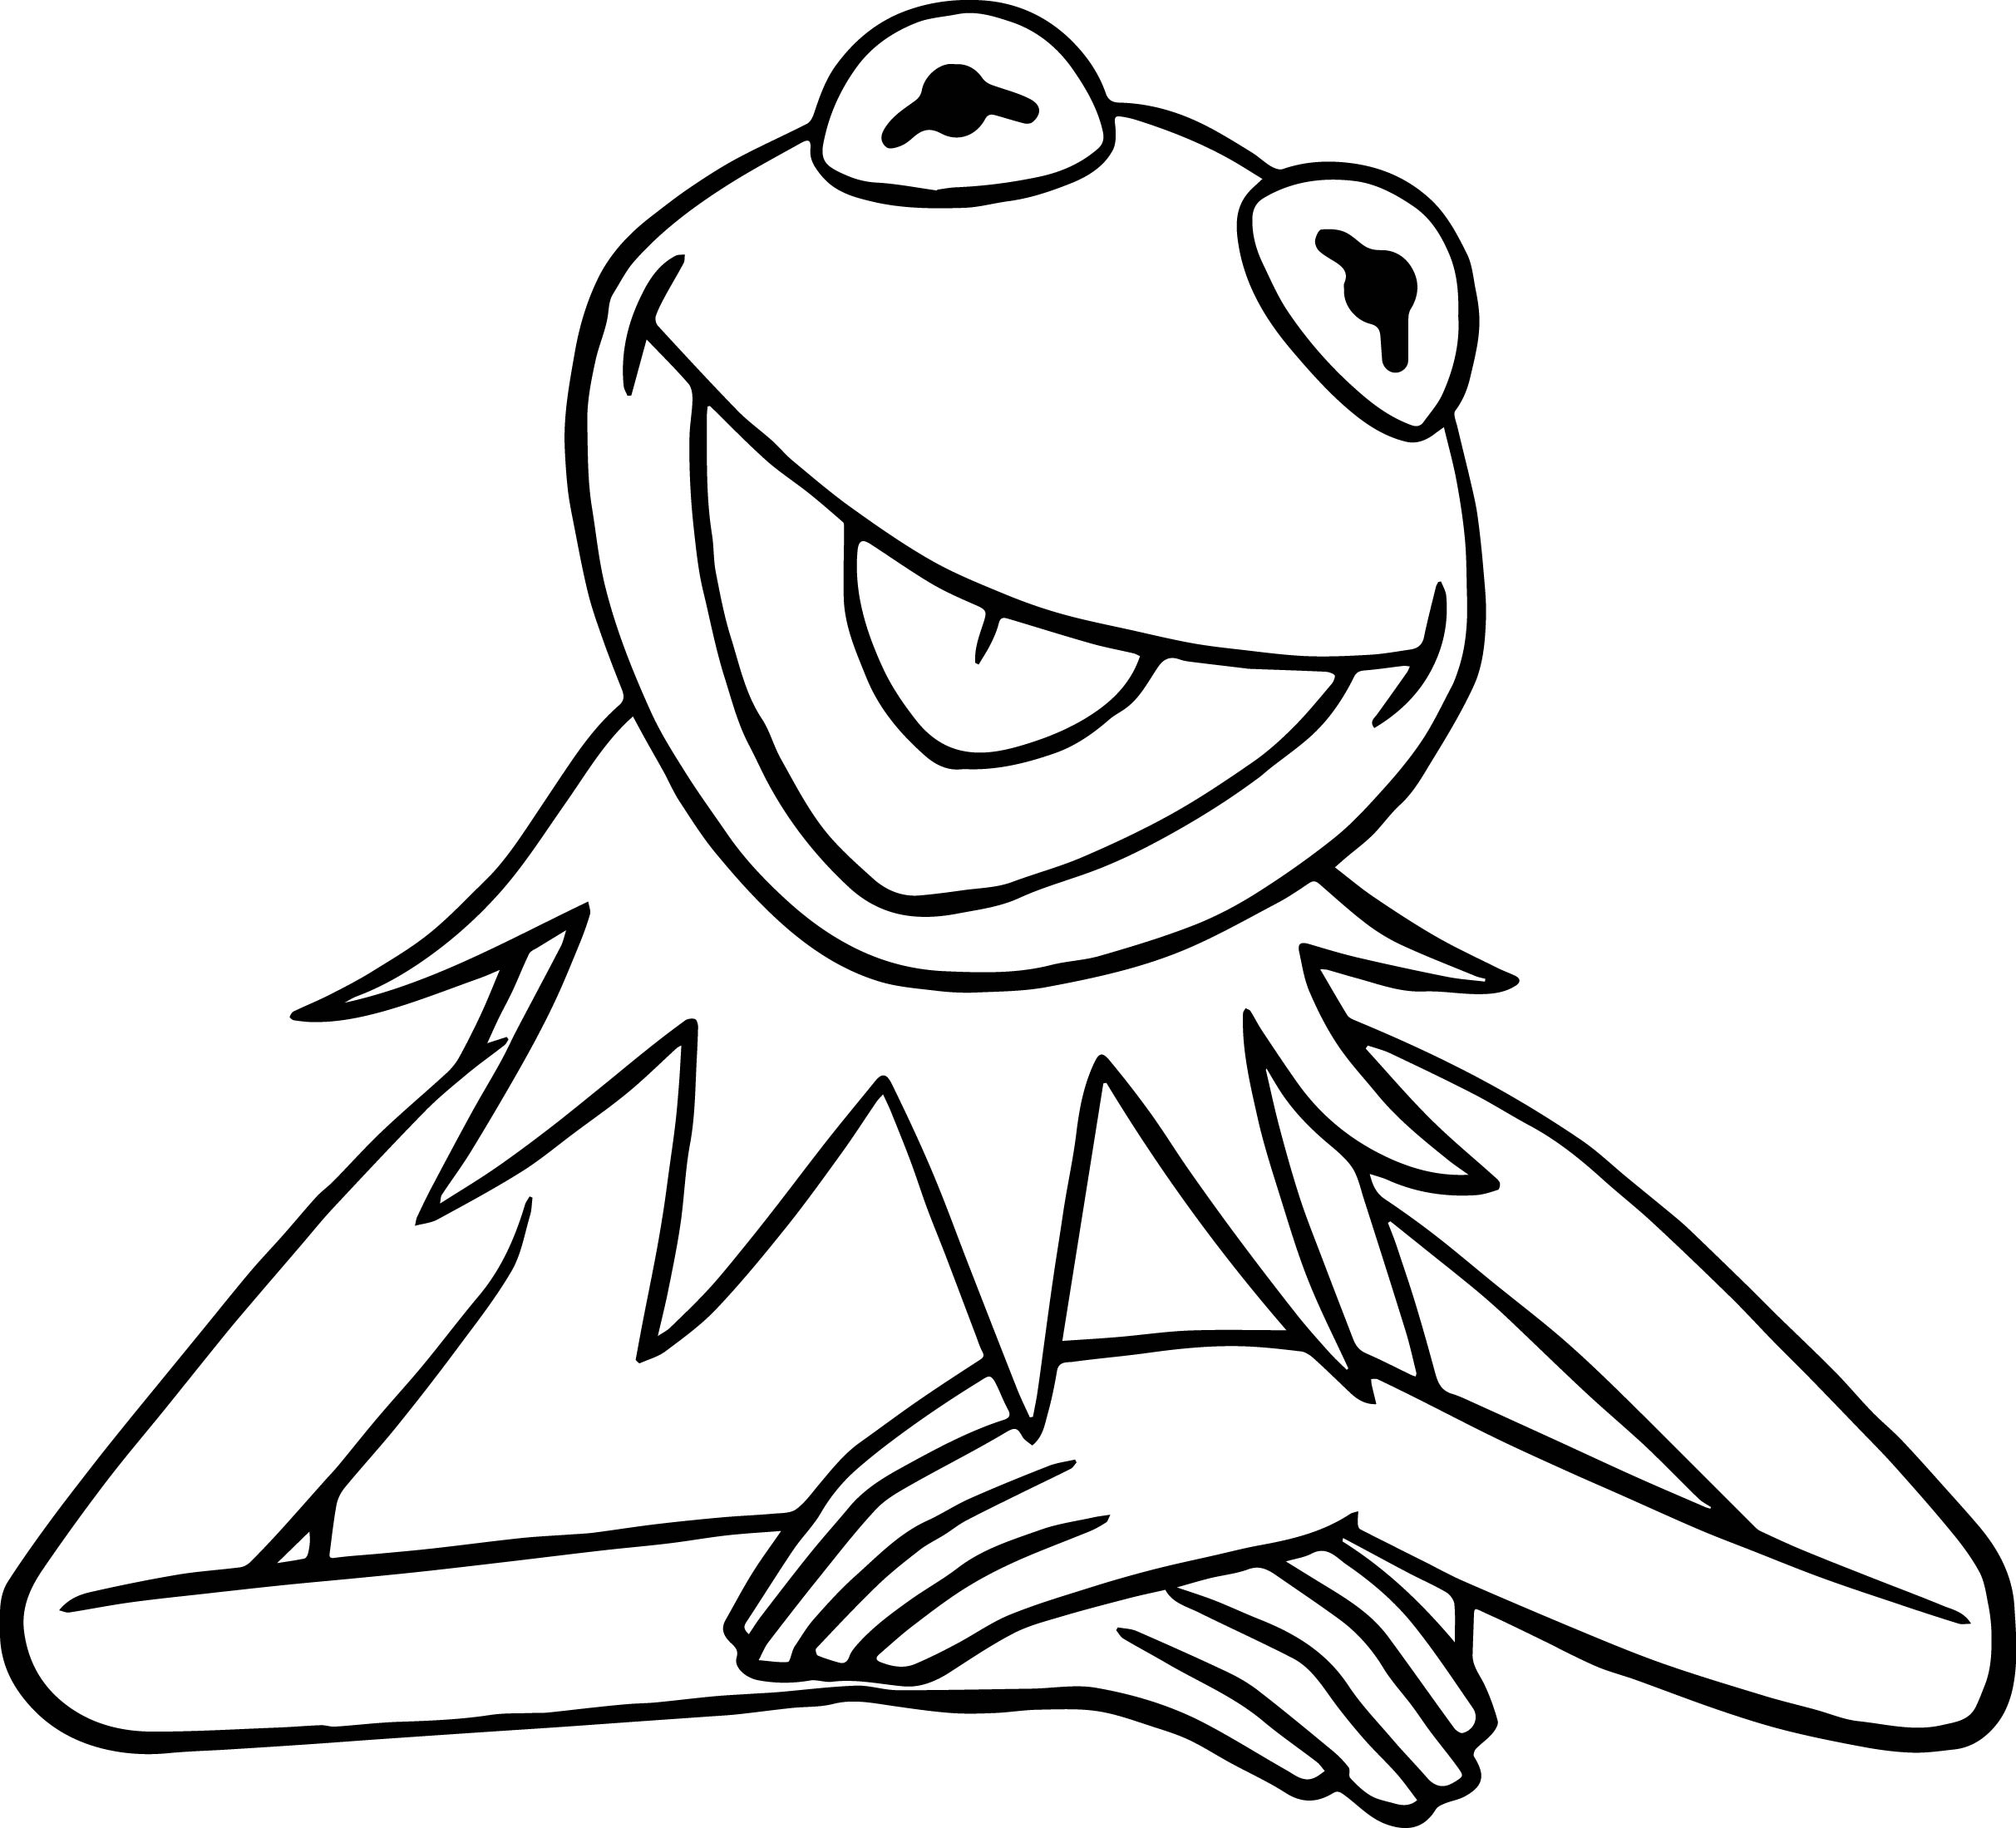 Frog Line Drawing At Getdrawings